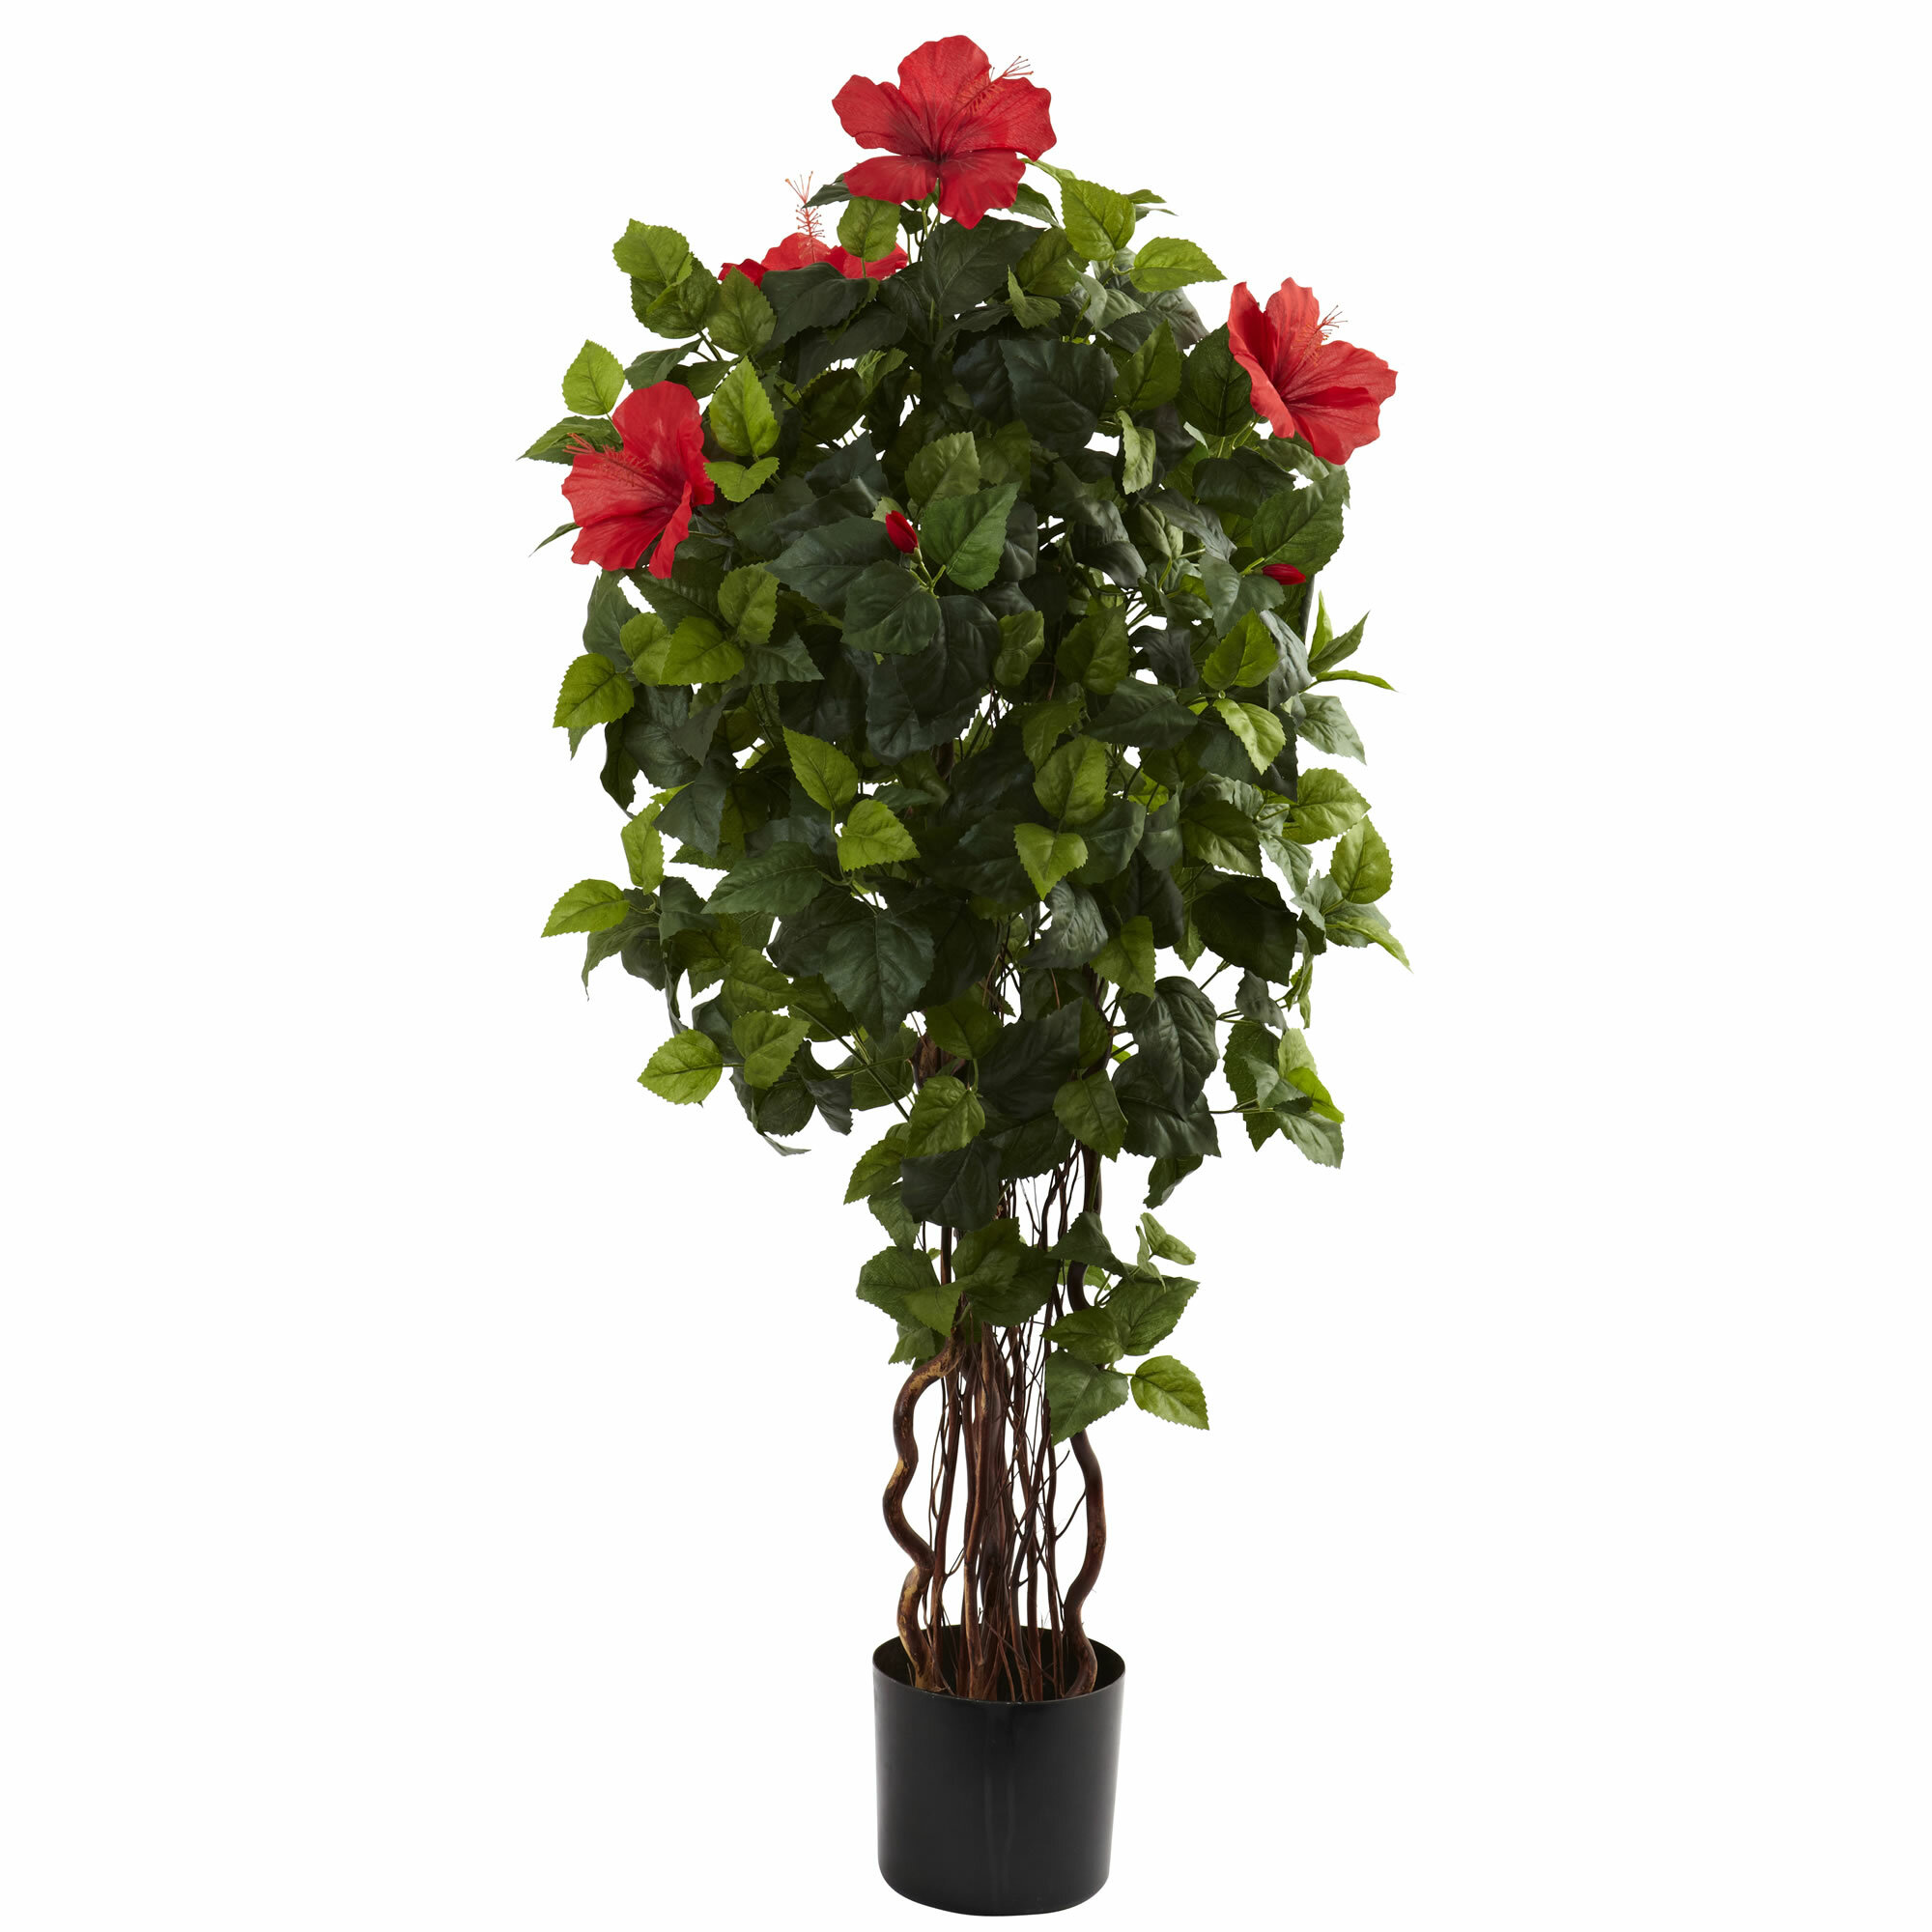 Darby Home Co Hibiscus Tree In Pot Reviews Wayfair